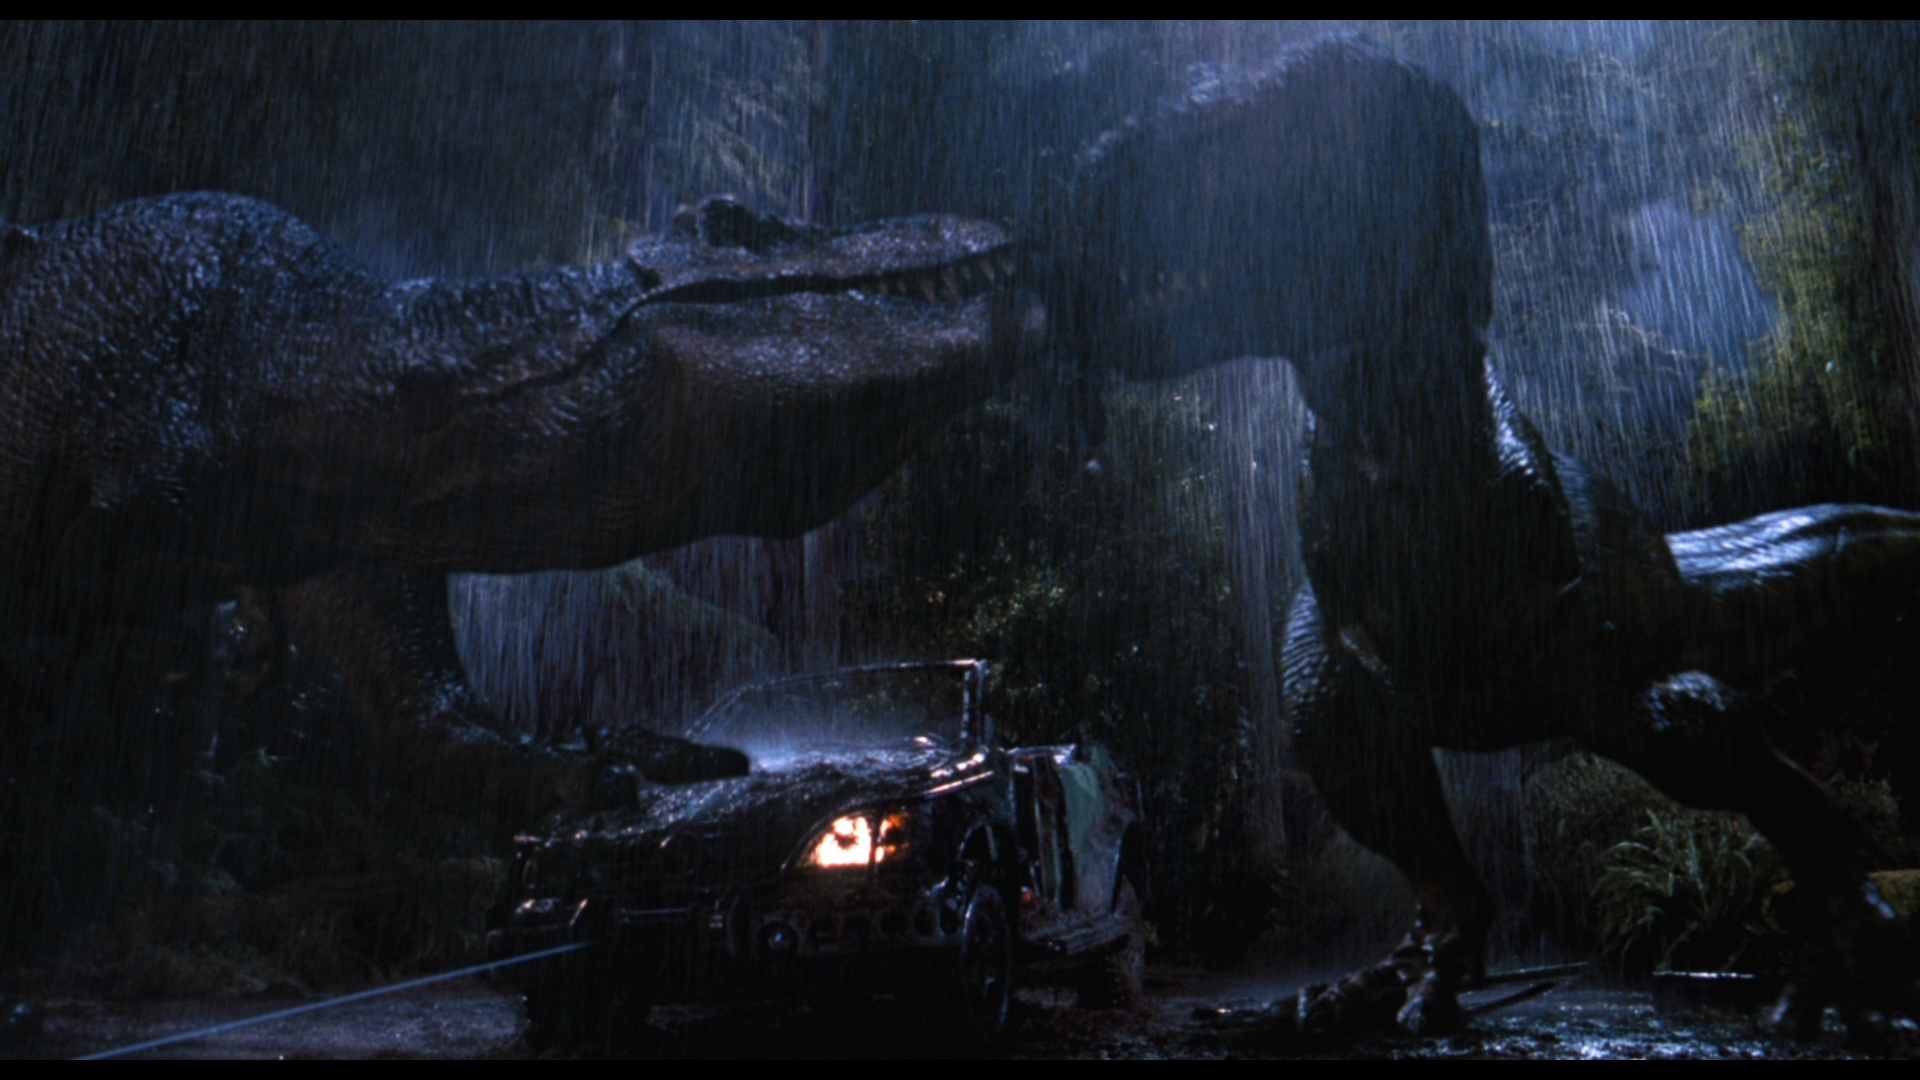 the film jurassic park Last month, universal studios re-released and converted into 3d the ultimate epic juggernaut movie experience of late generation xers such as myself: jurassic park people, if you were twelve years old when this movie came out, then i'm sure like me you saw this thing three or four times in the.